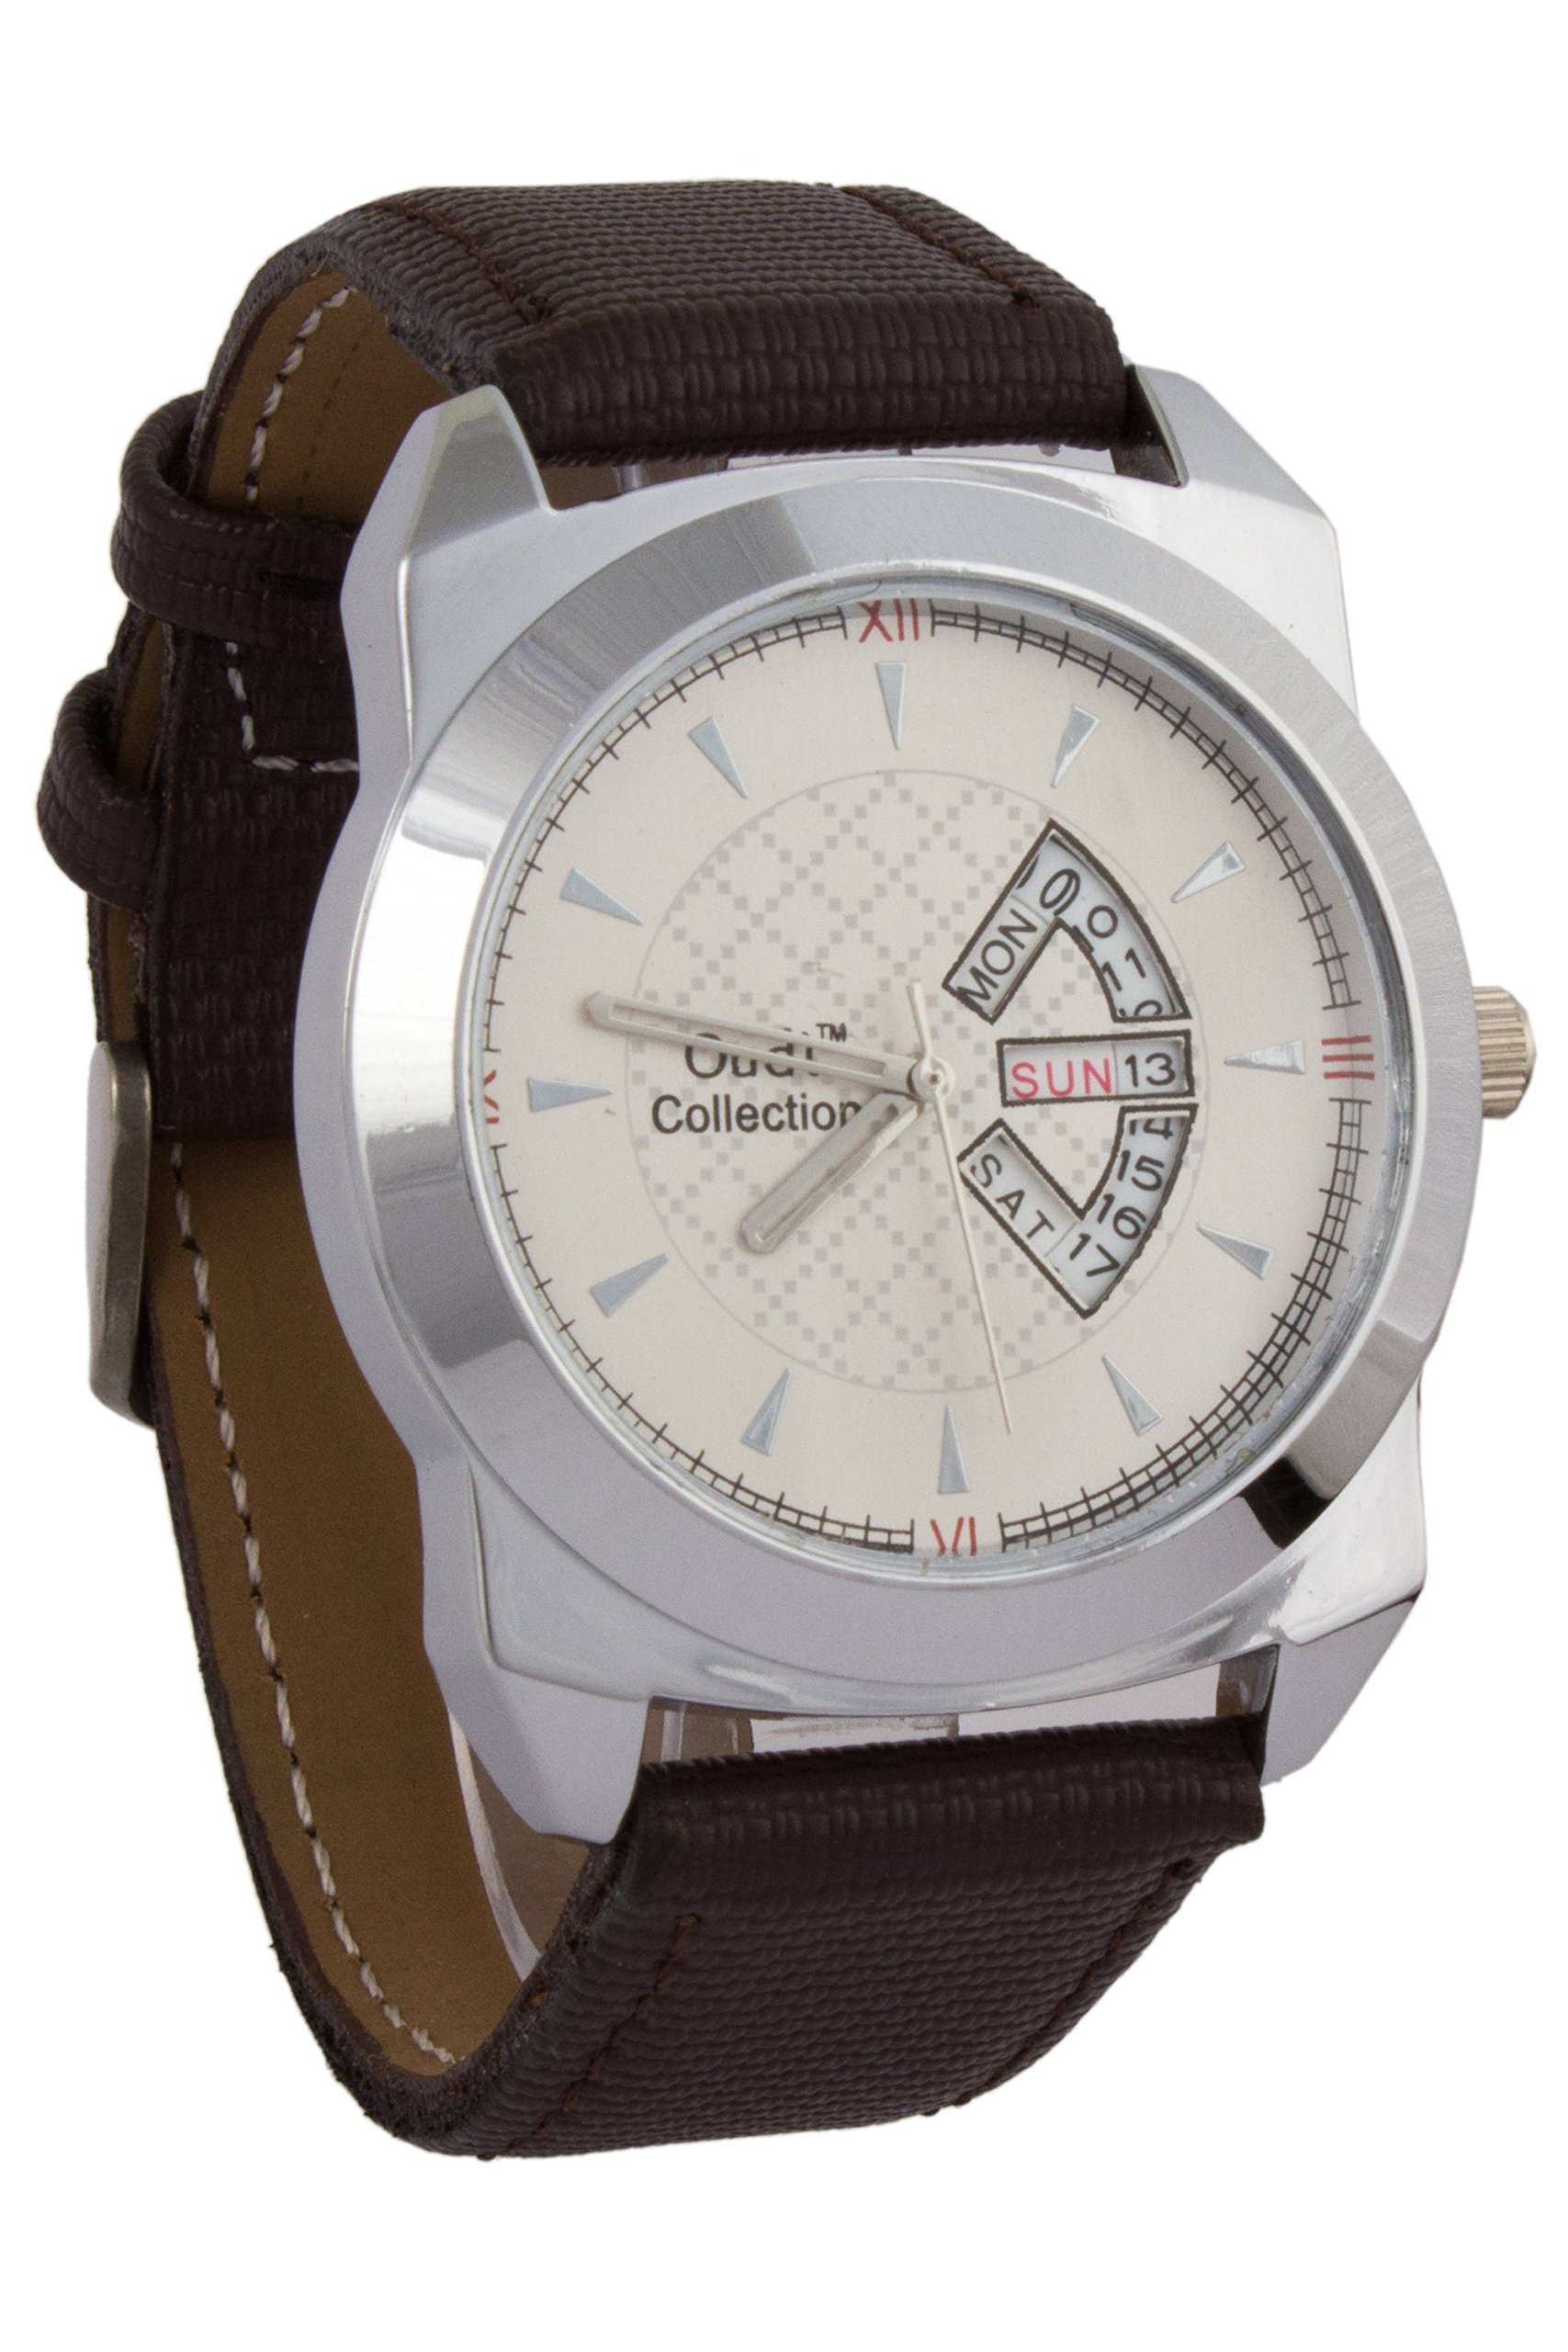 Addic Audi Cream Dial With Date Panel And Black Leather Strap Watch For Men